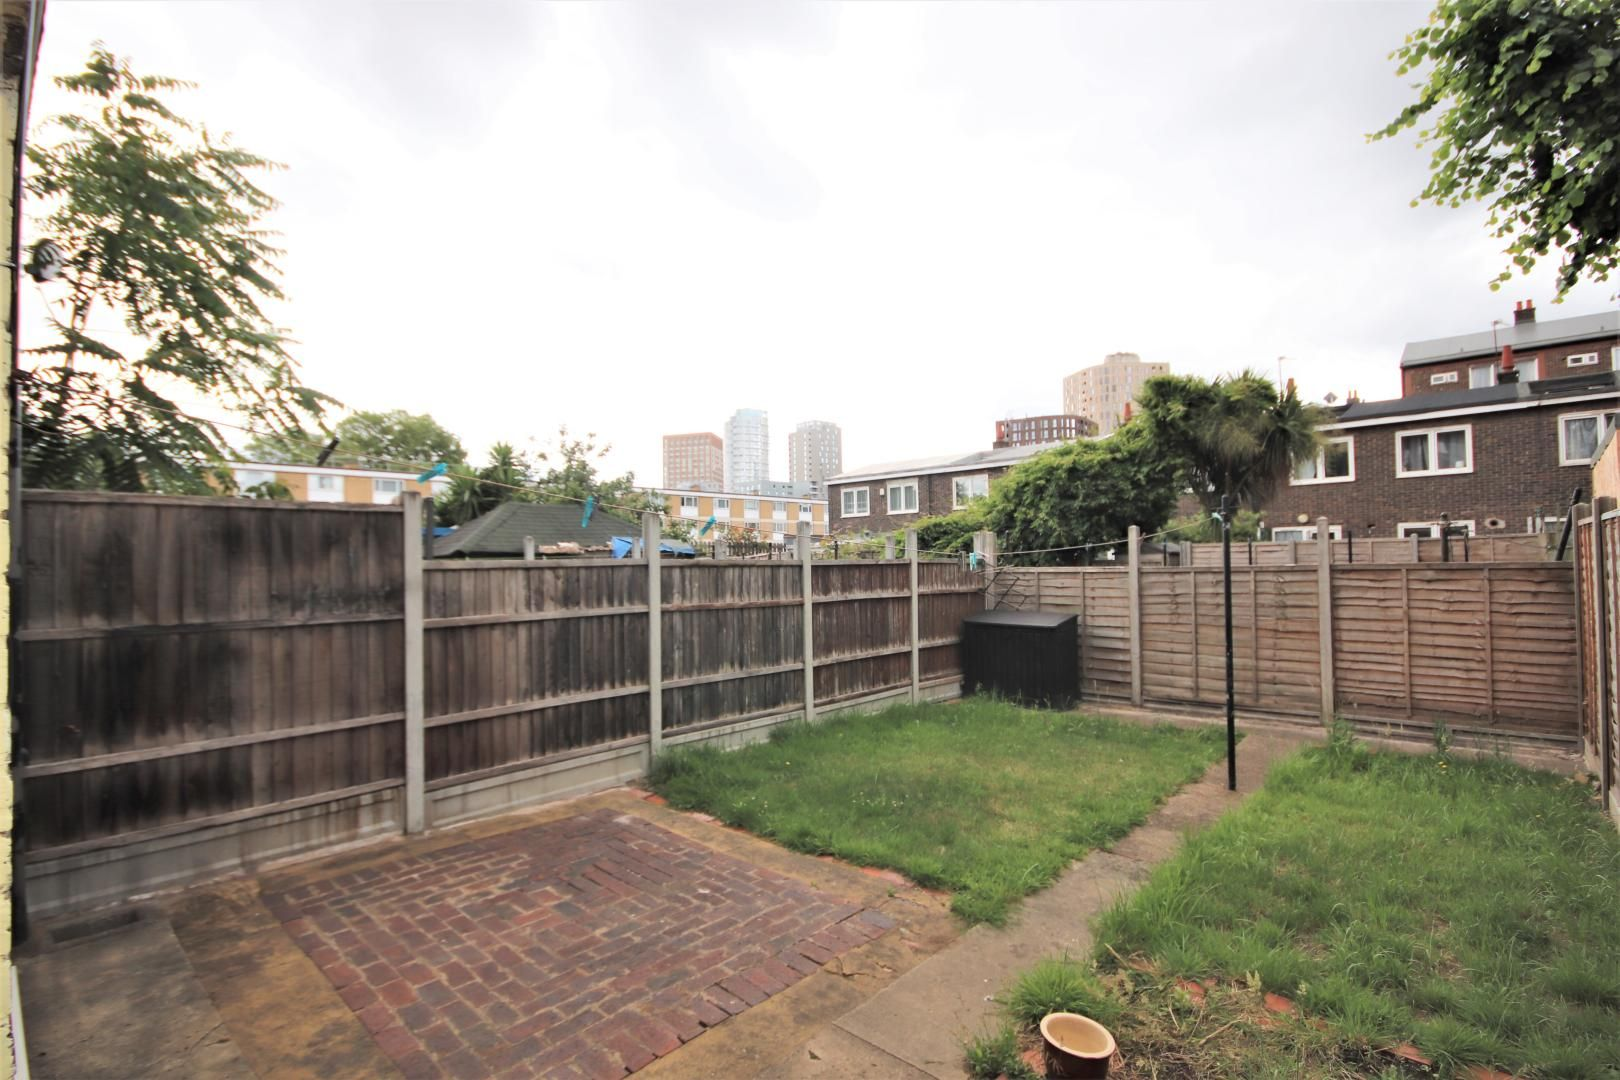 4 bed house for sale in Woodall Close, E14